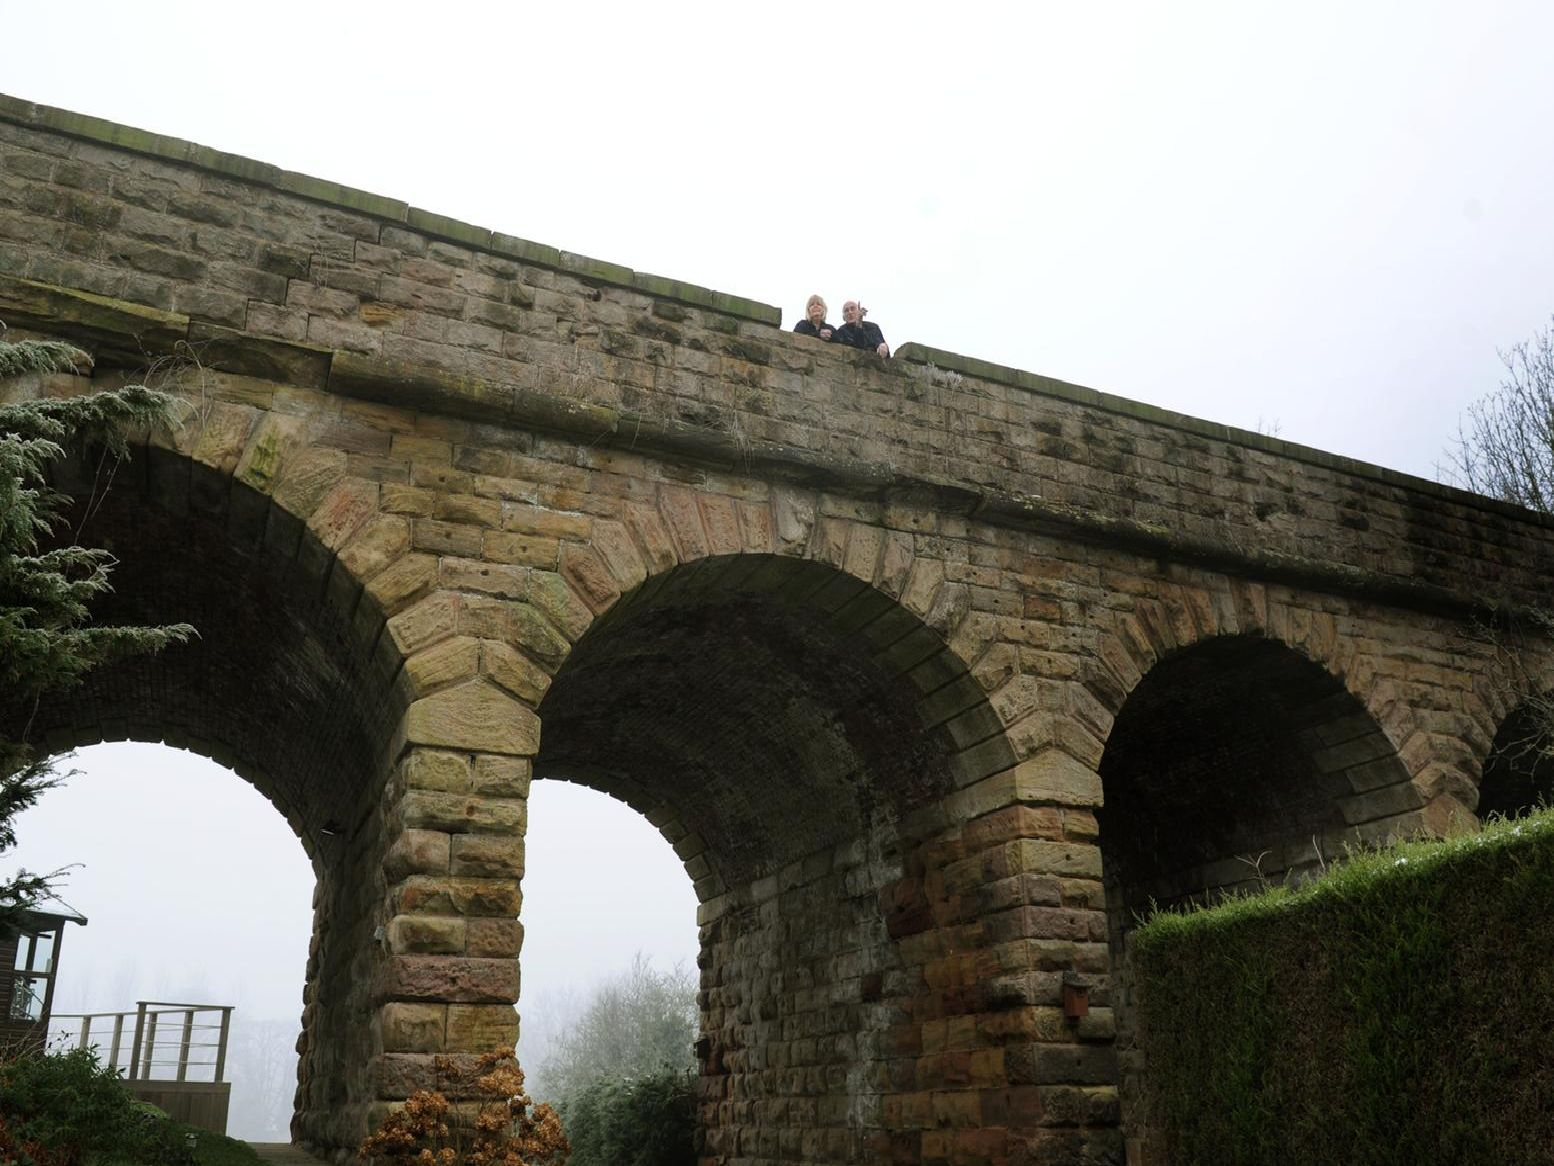 Spofforth Viaduct